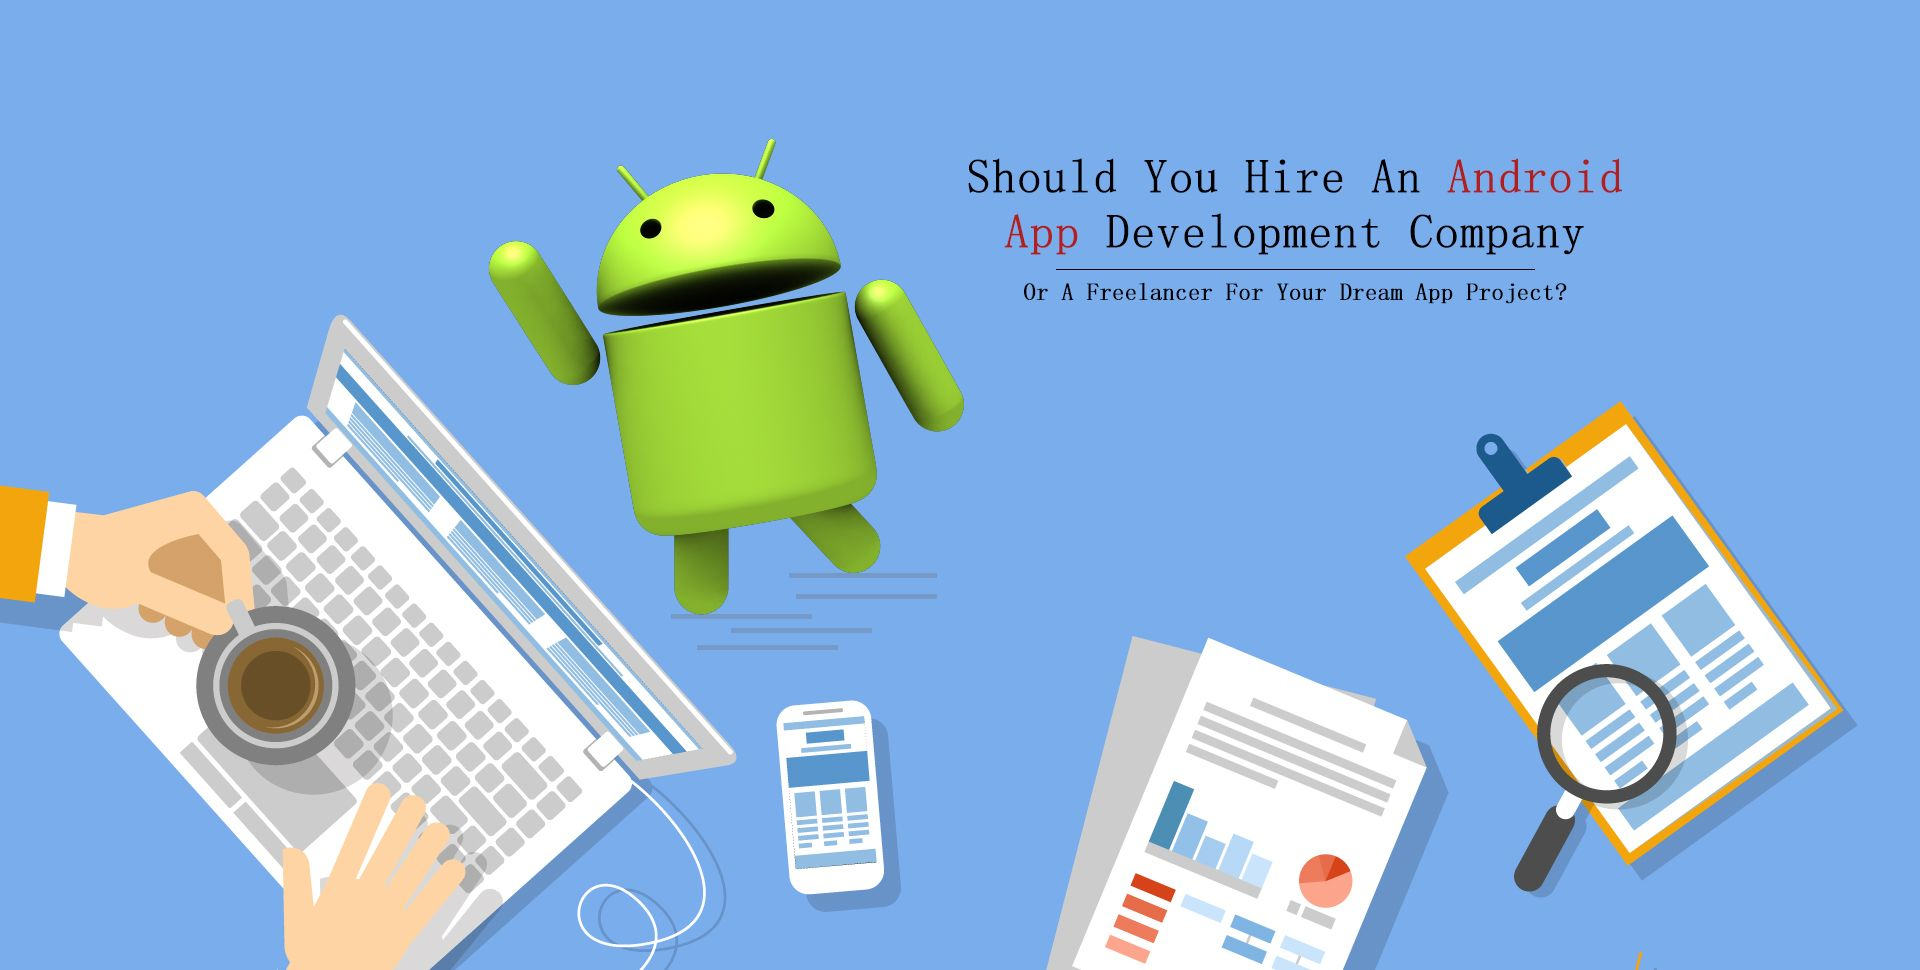 Hire Android App Development Company Or Freelancer which